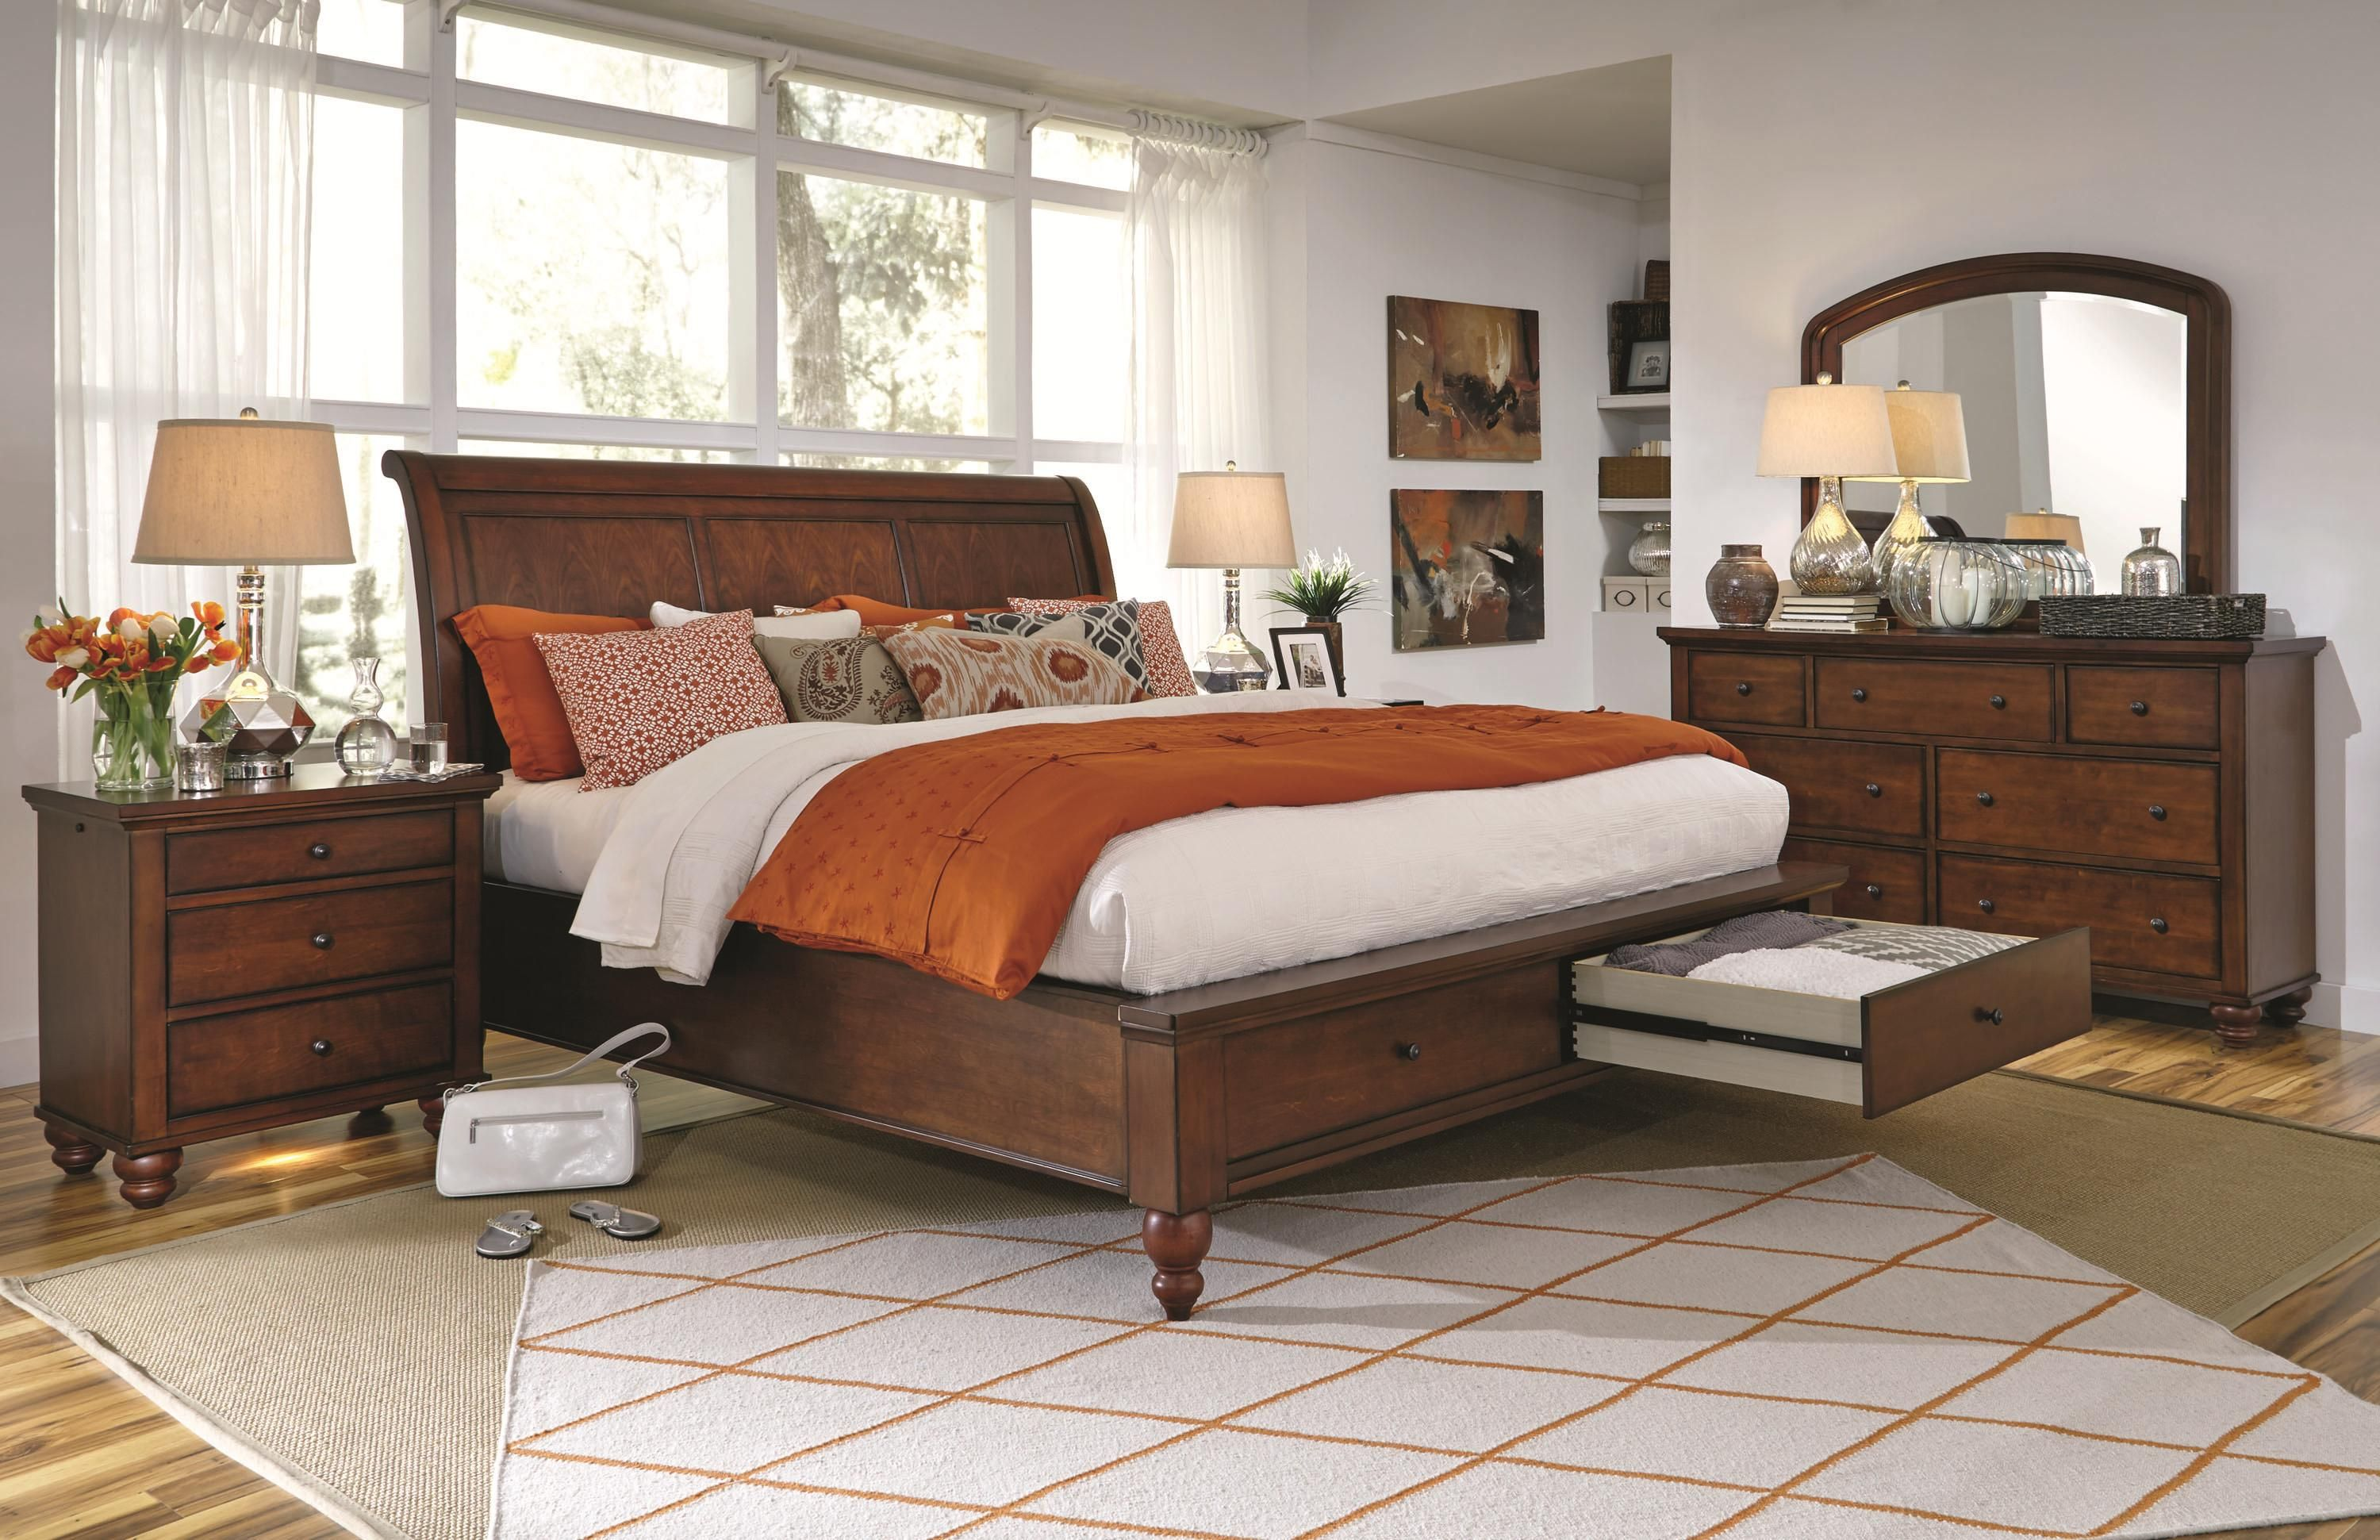 Cambridge king bedroom group by aspenhome favorite furniture